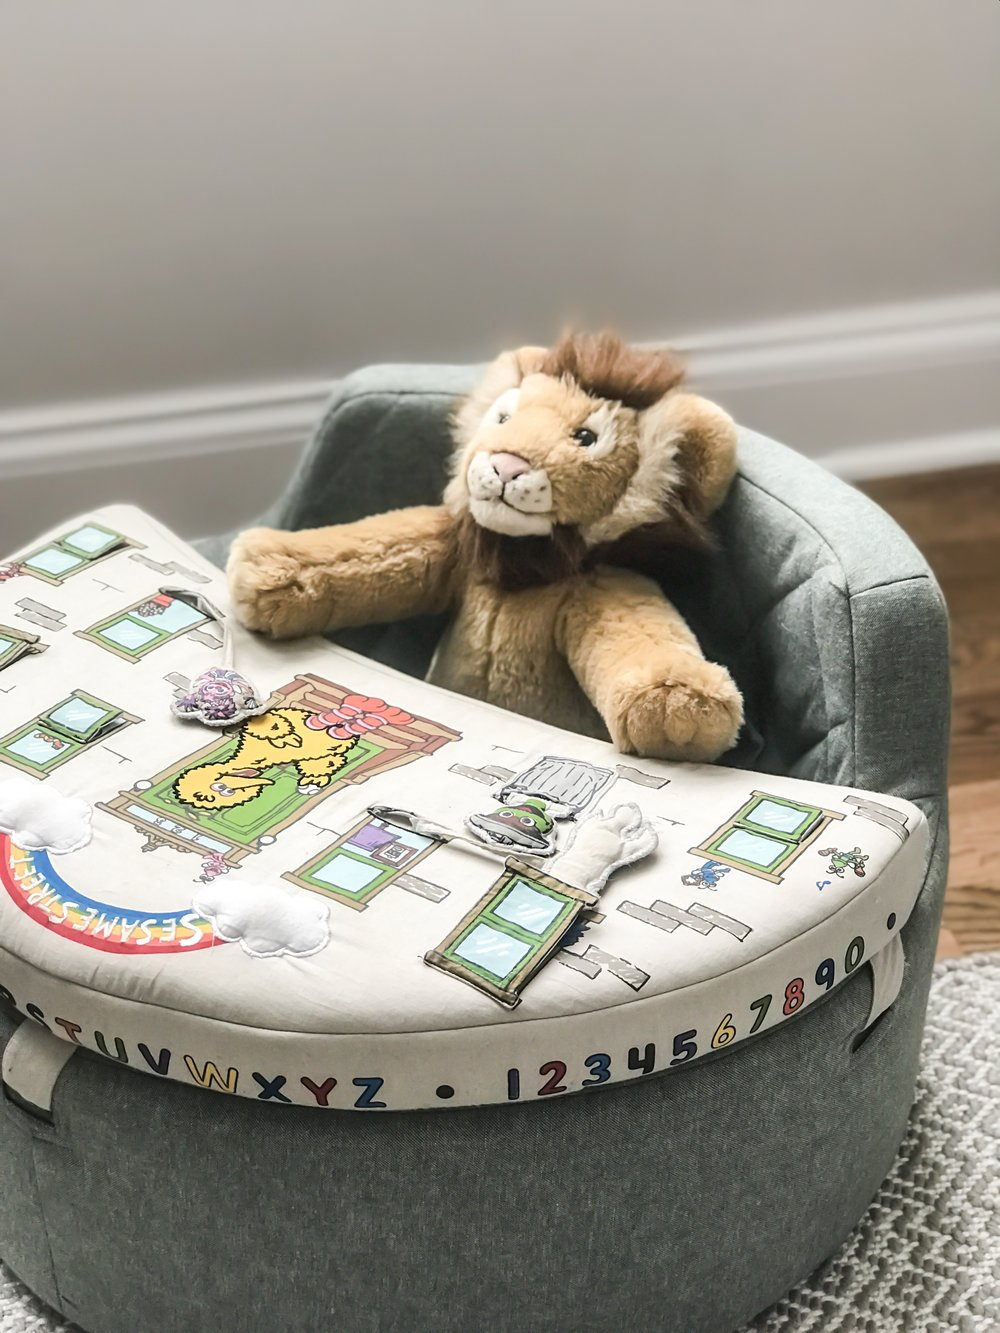 Must have activity table for nursery. Toy ideas for babies. Soft activity center for baby. #activity #center #playroom #ideas